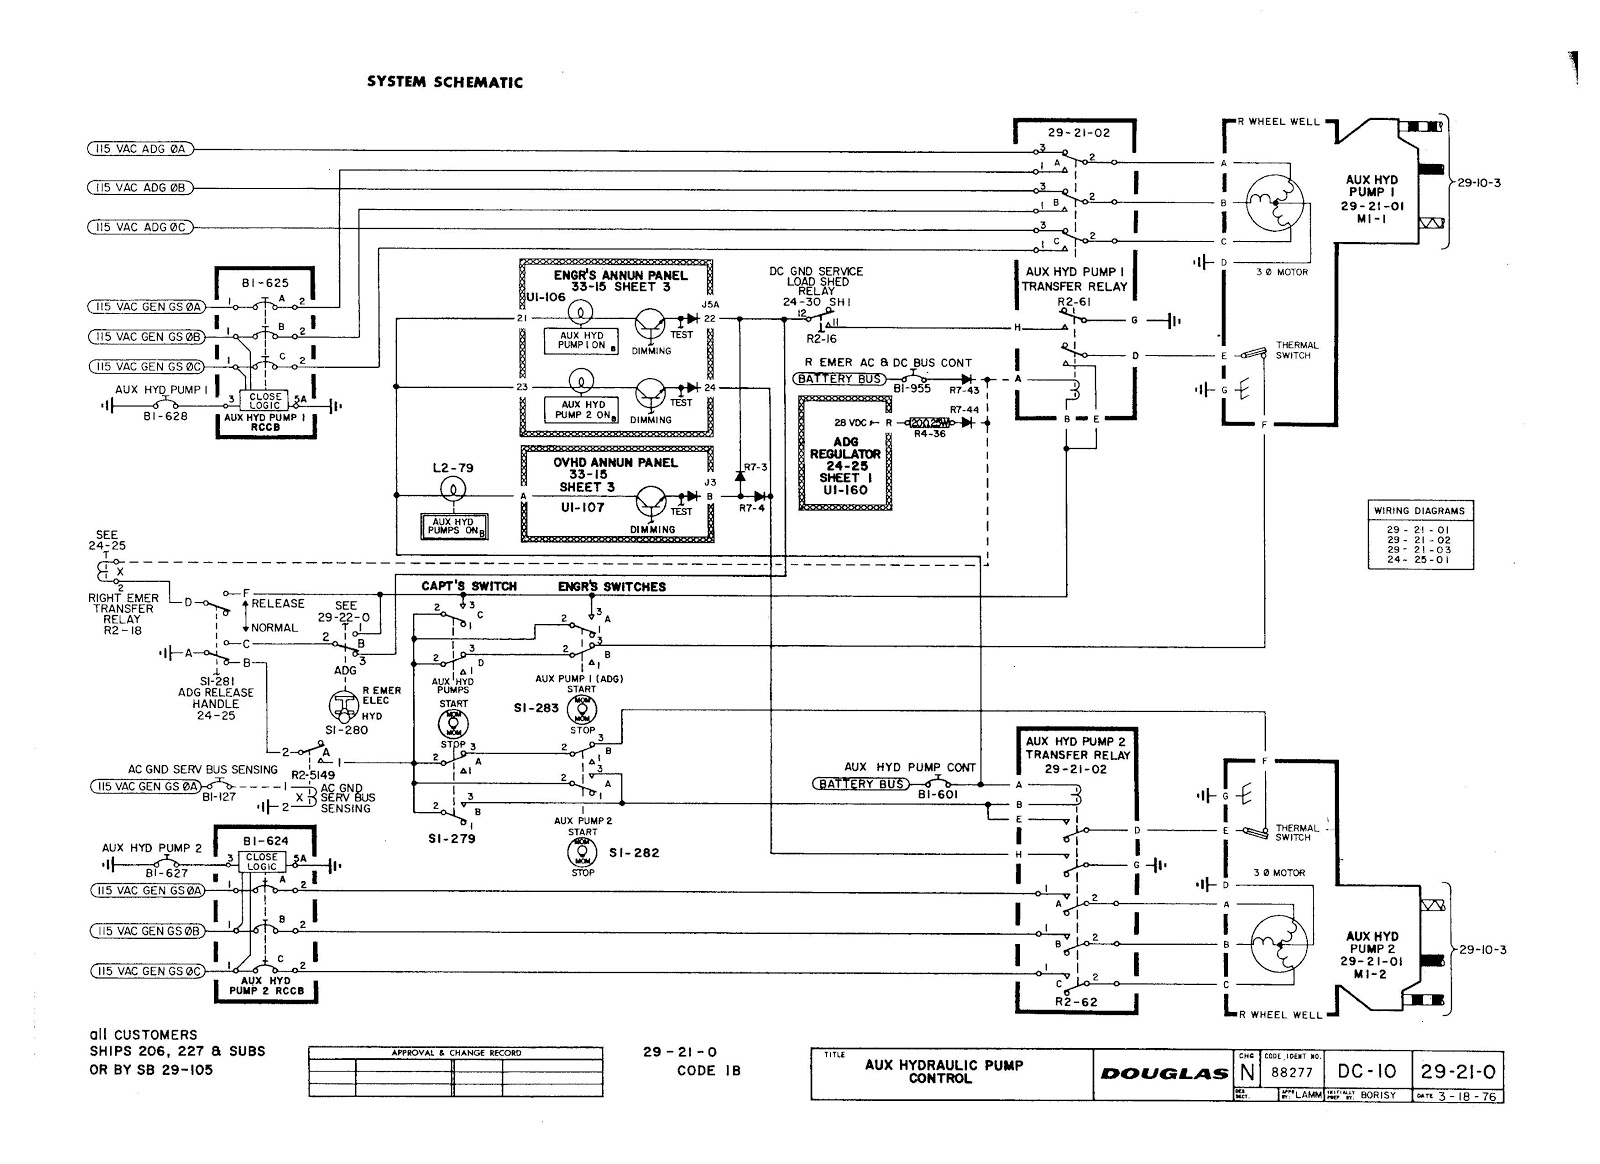 medium resolution of wiring diagram aircraft drawings wiring diagram expert experimental aircraft wiring diagrams aircraft wiring diagrams